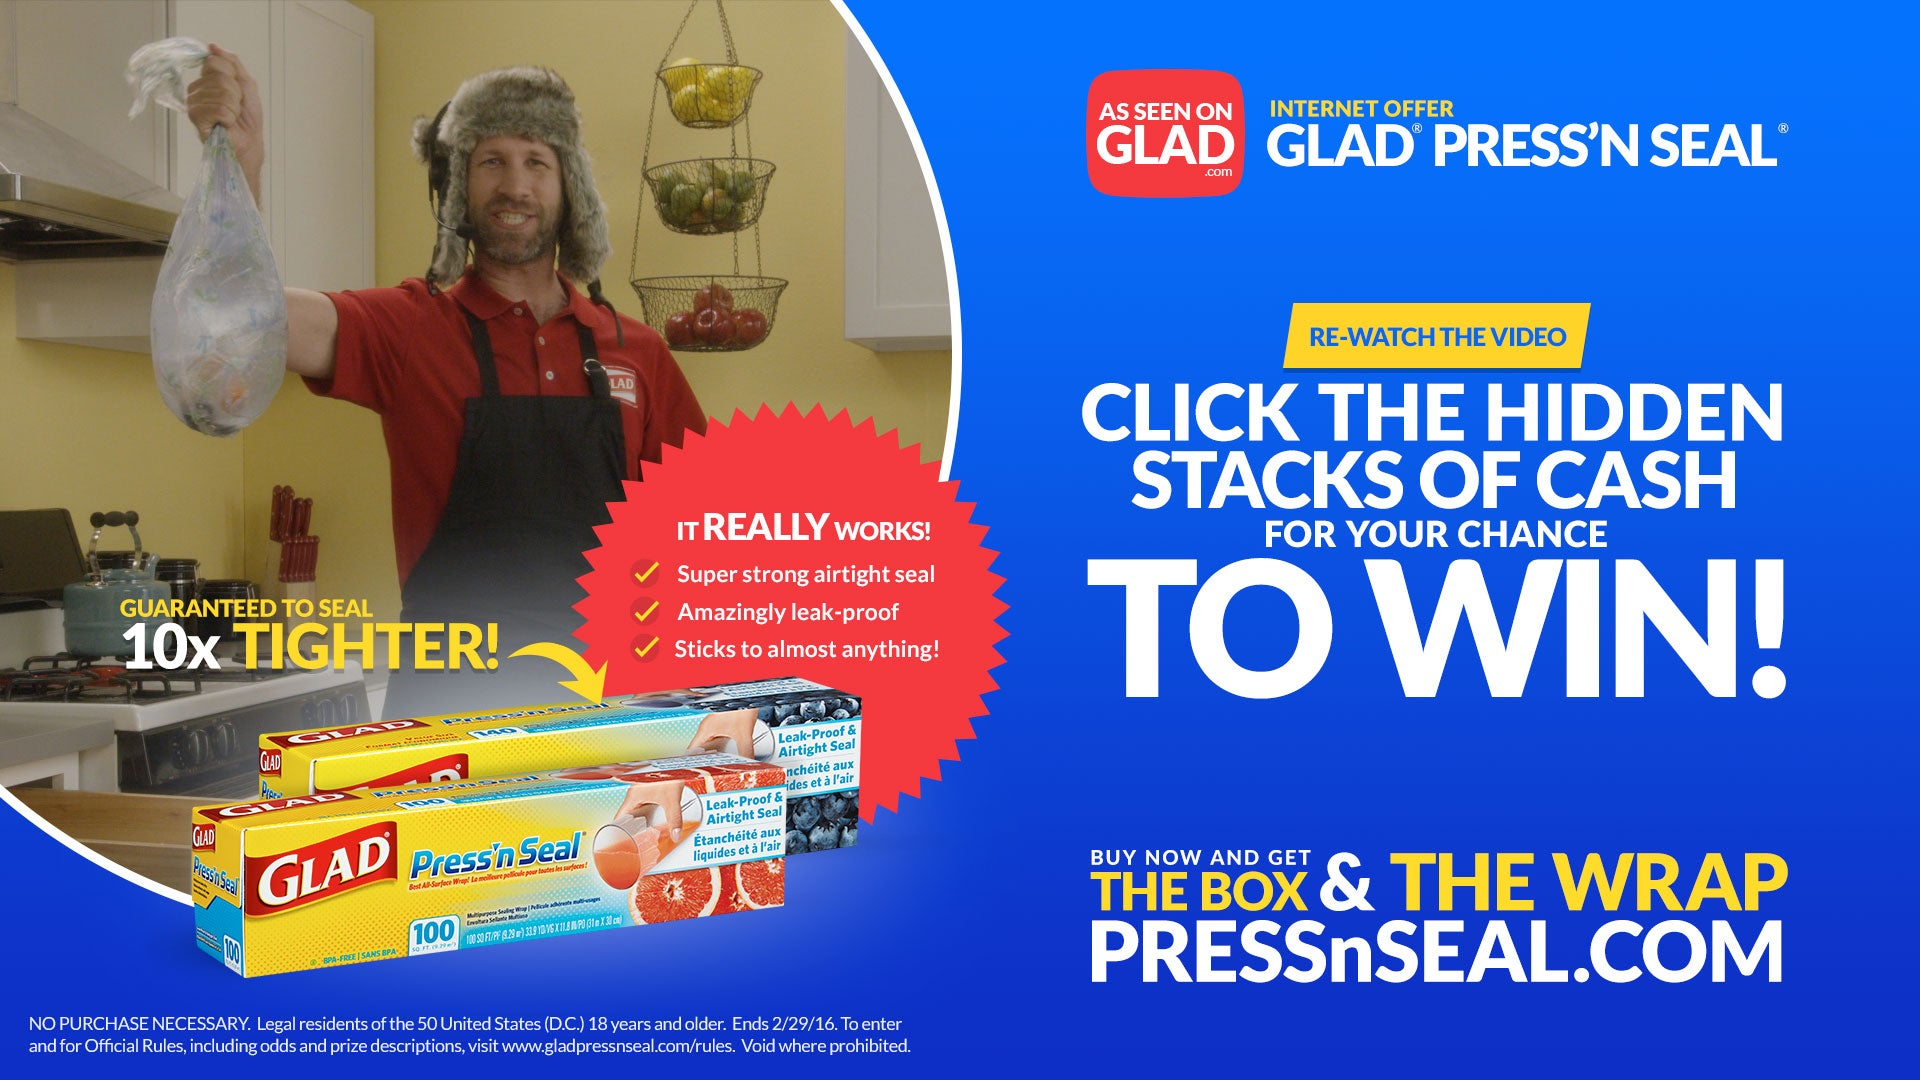 Re-watch the video. Click the hidden stacks of cash for your chance to win!